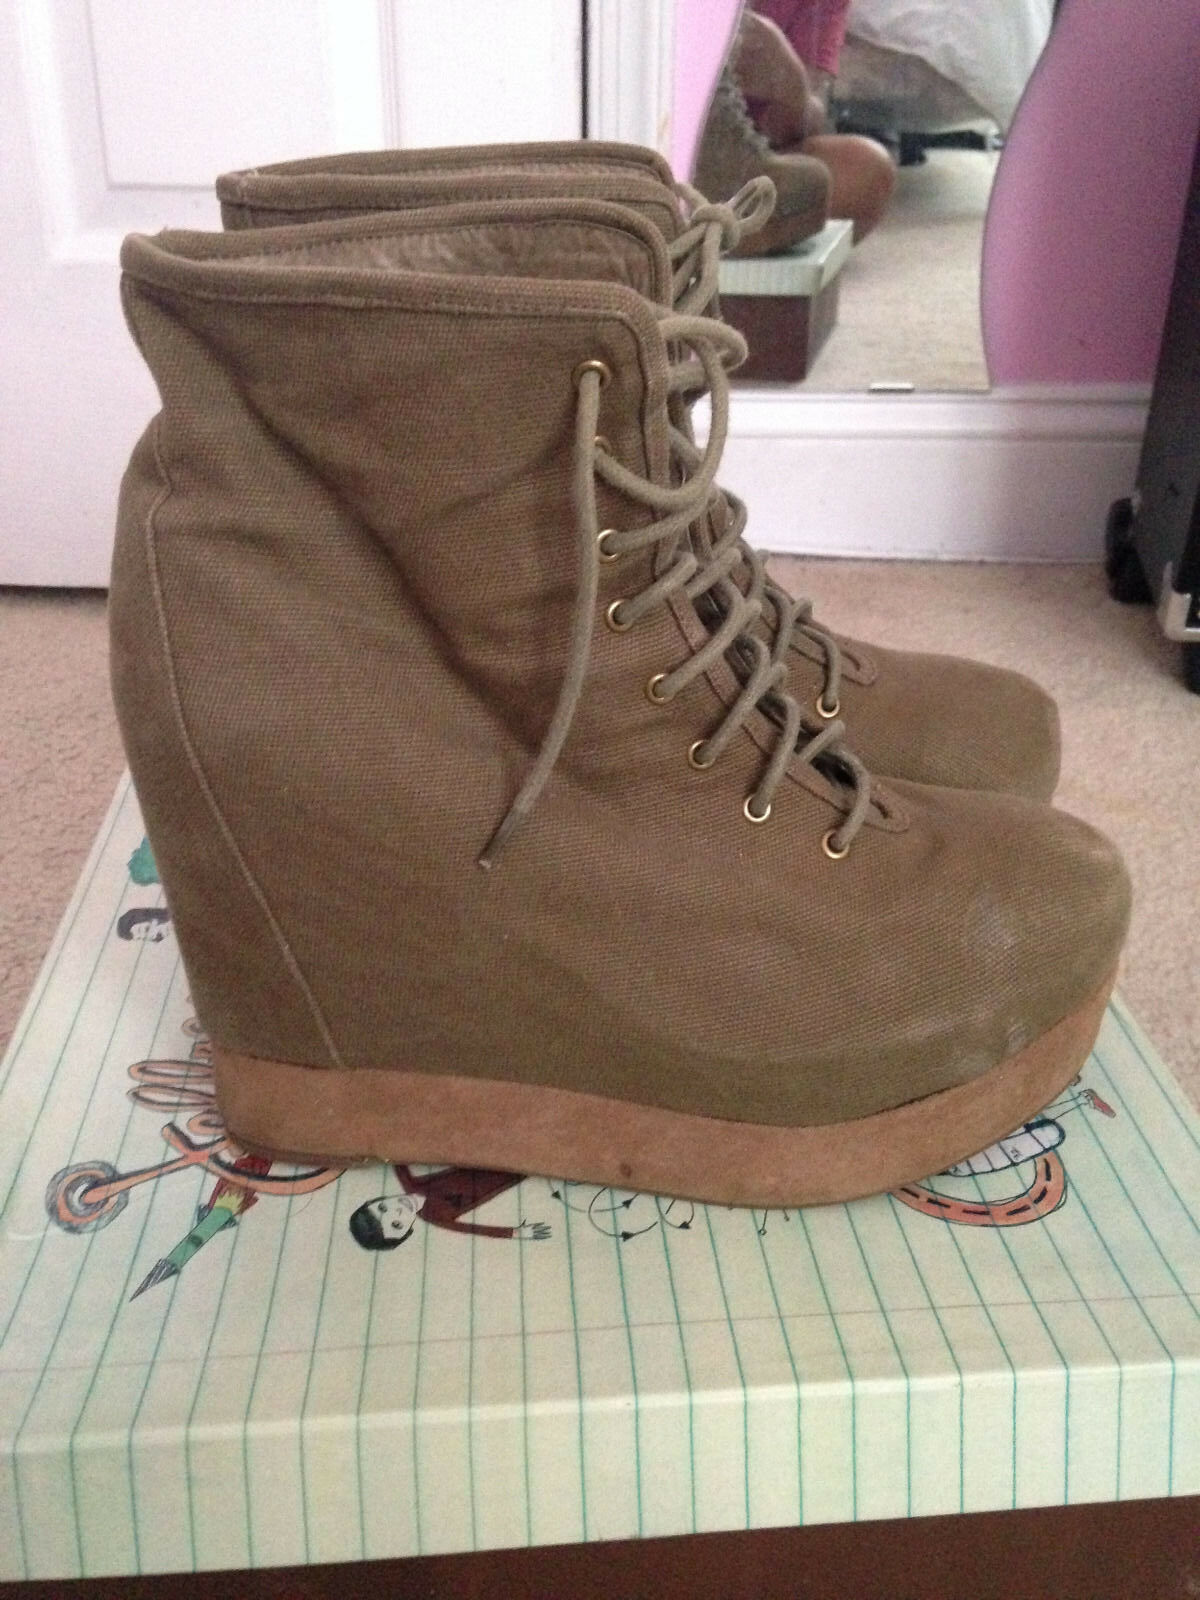 Jeffrey Campbell Throwdown distressed ankle boot hidden platform Khaki size 9